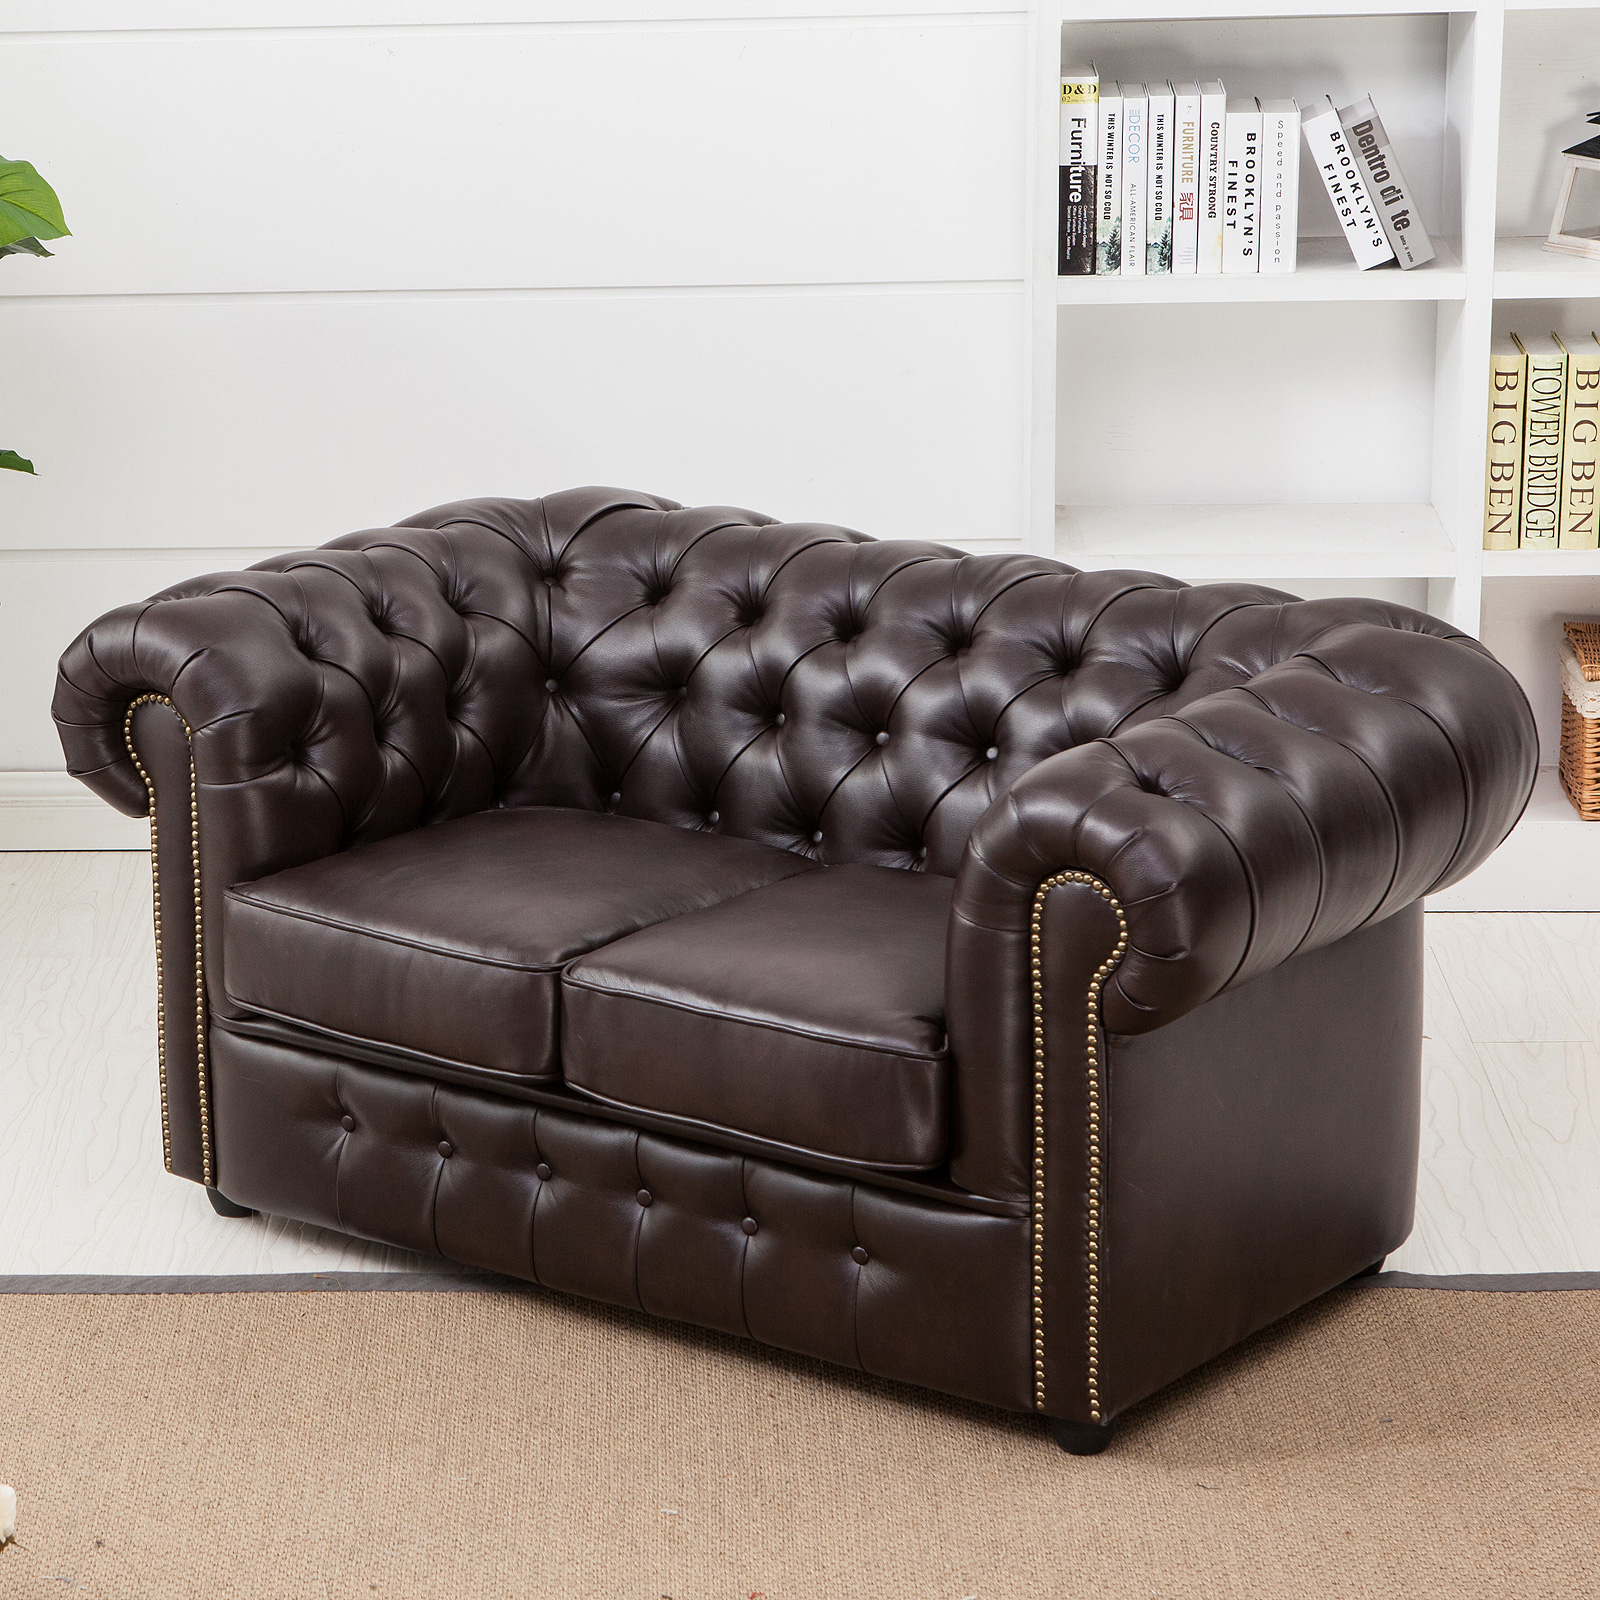 chesterfield polster sofa 2 sitzer 3 sitzer sessel. Black Bedroom Furniture Sets. Home Design Ideas